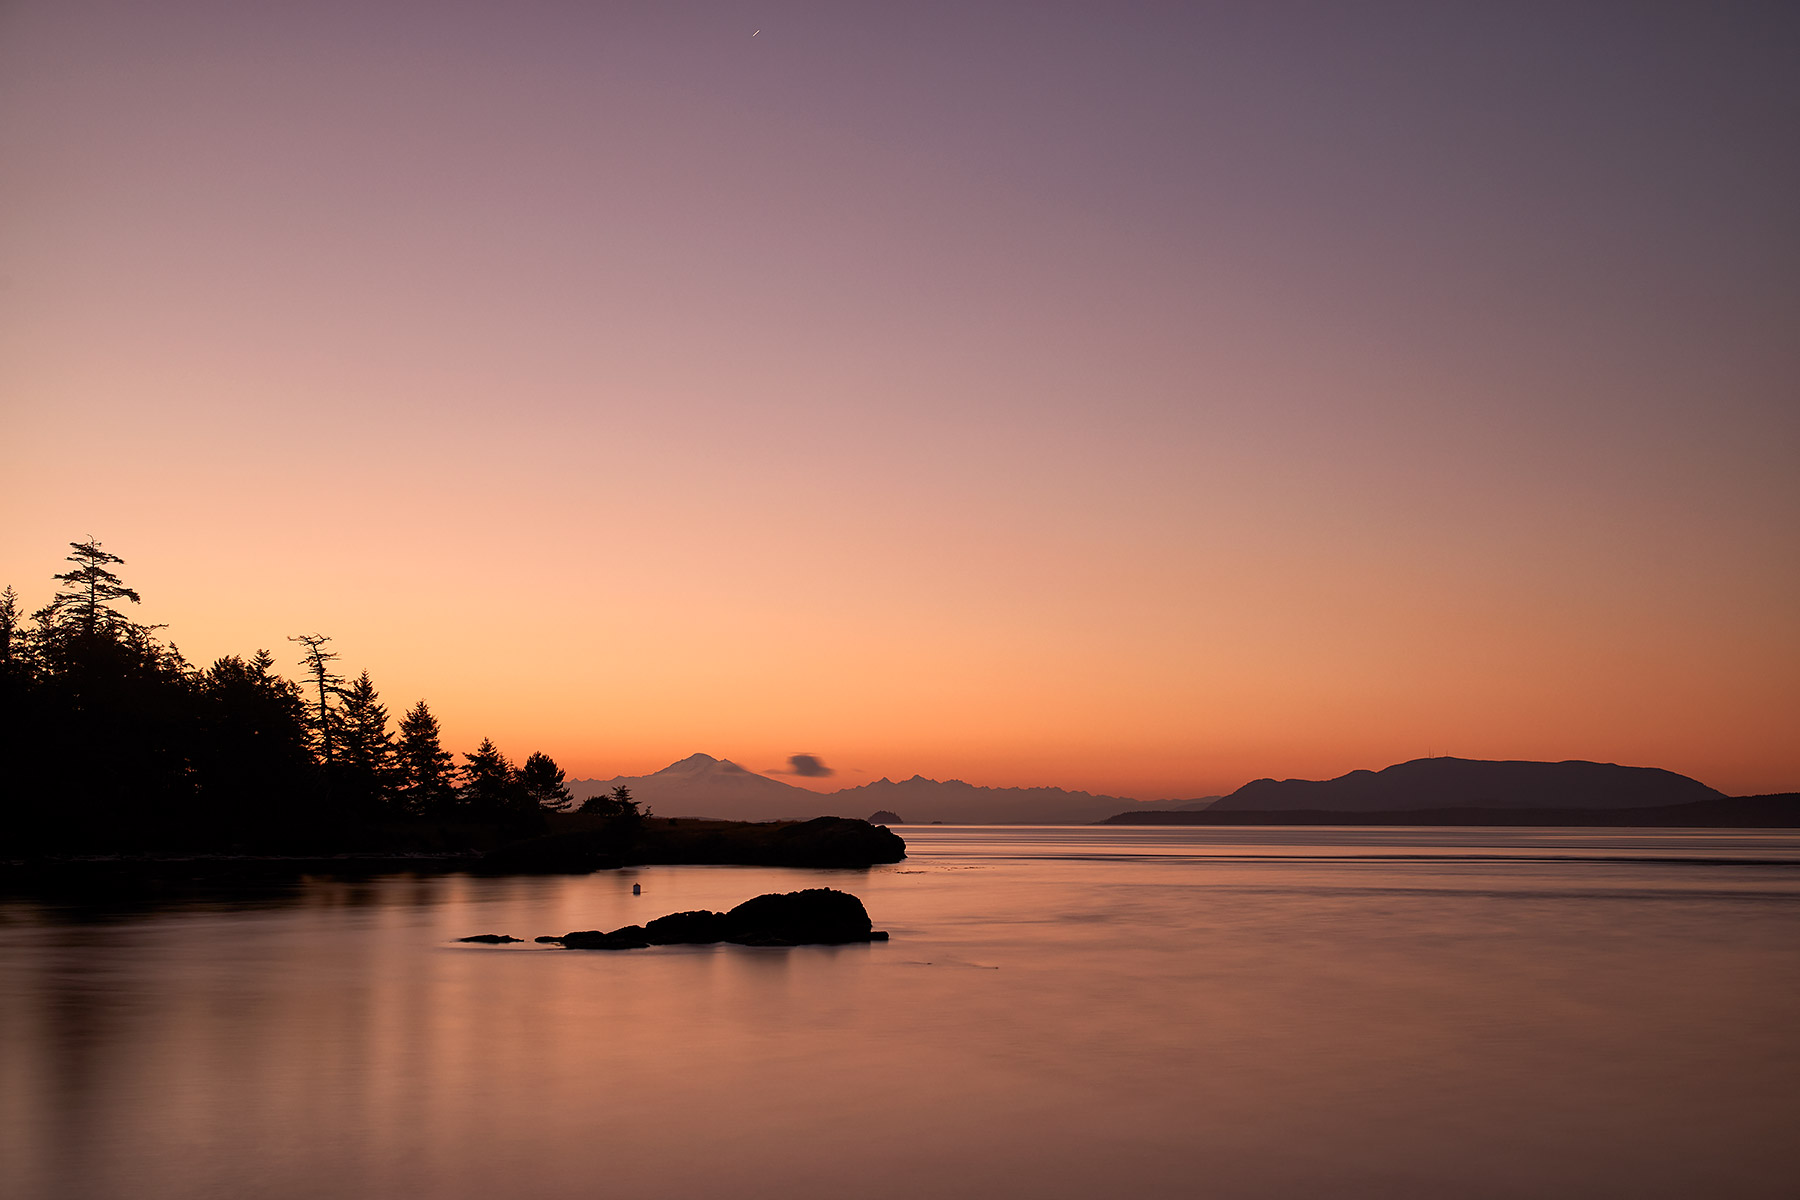 The Morning After, Pender Island, BC